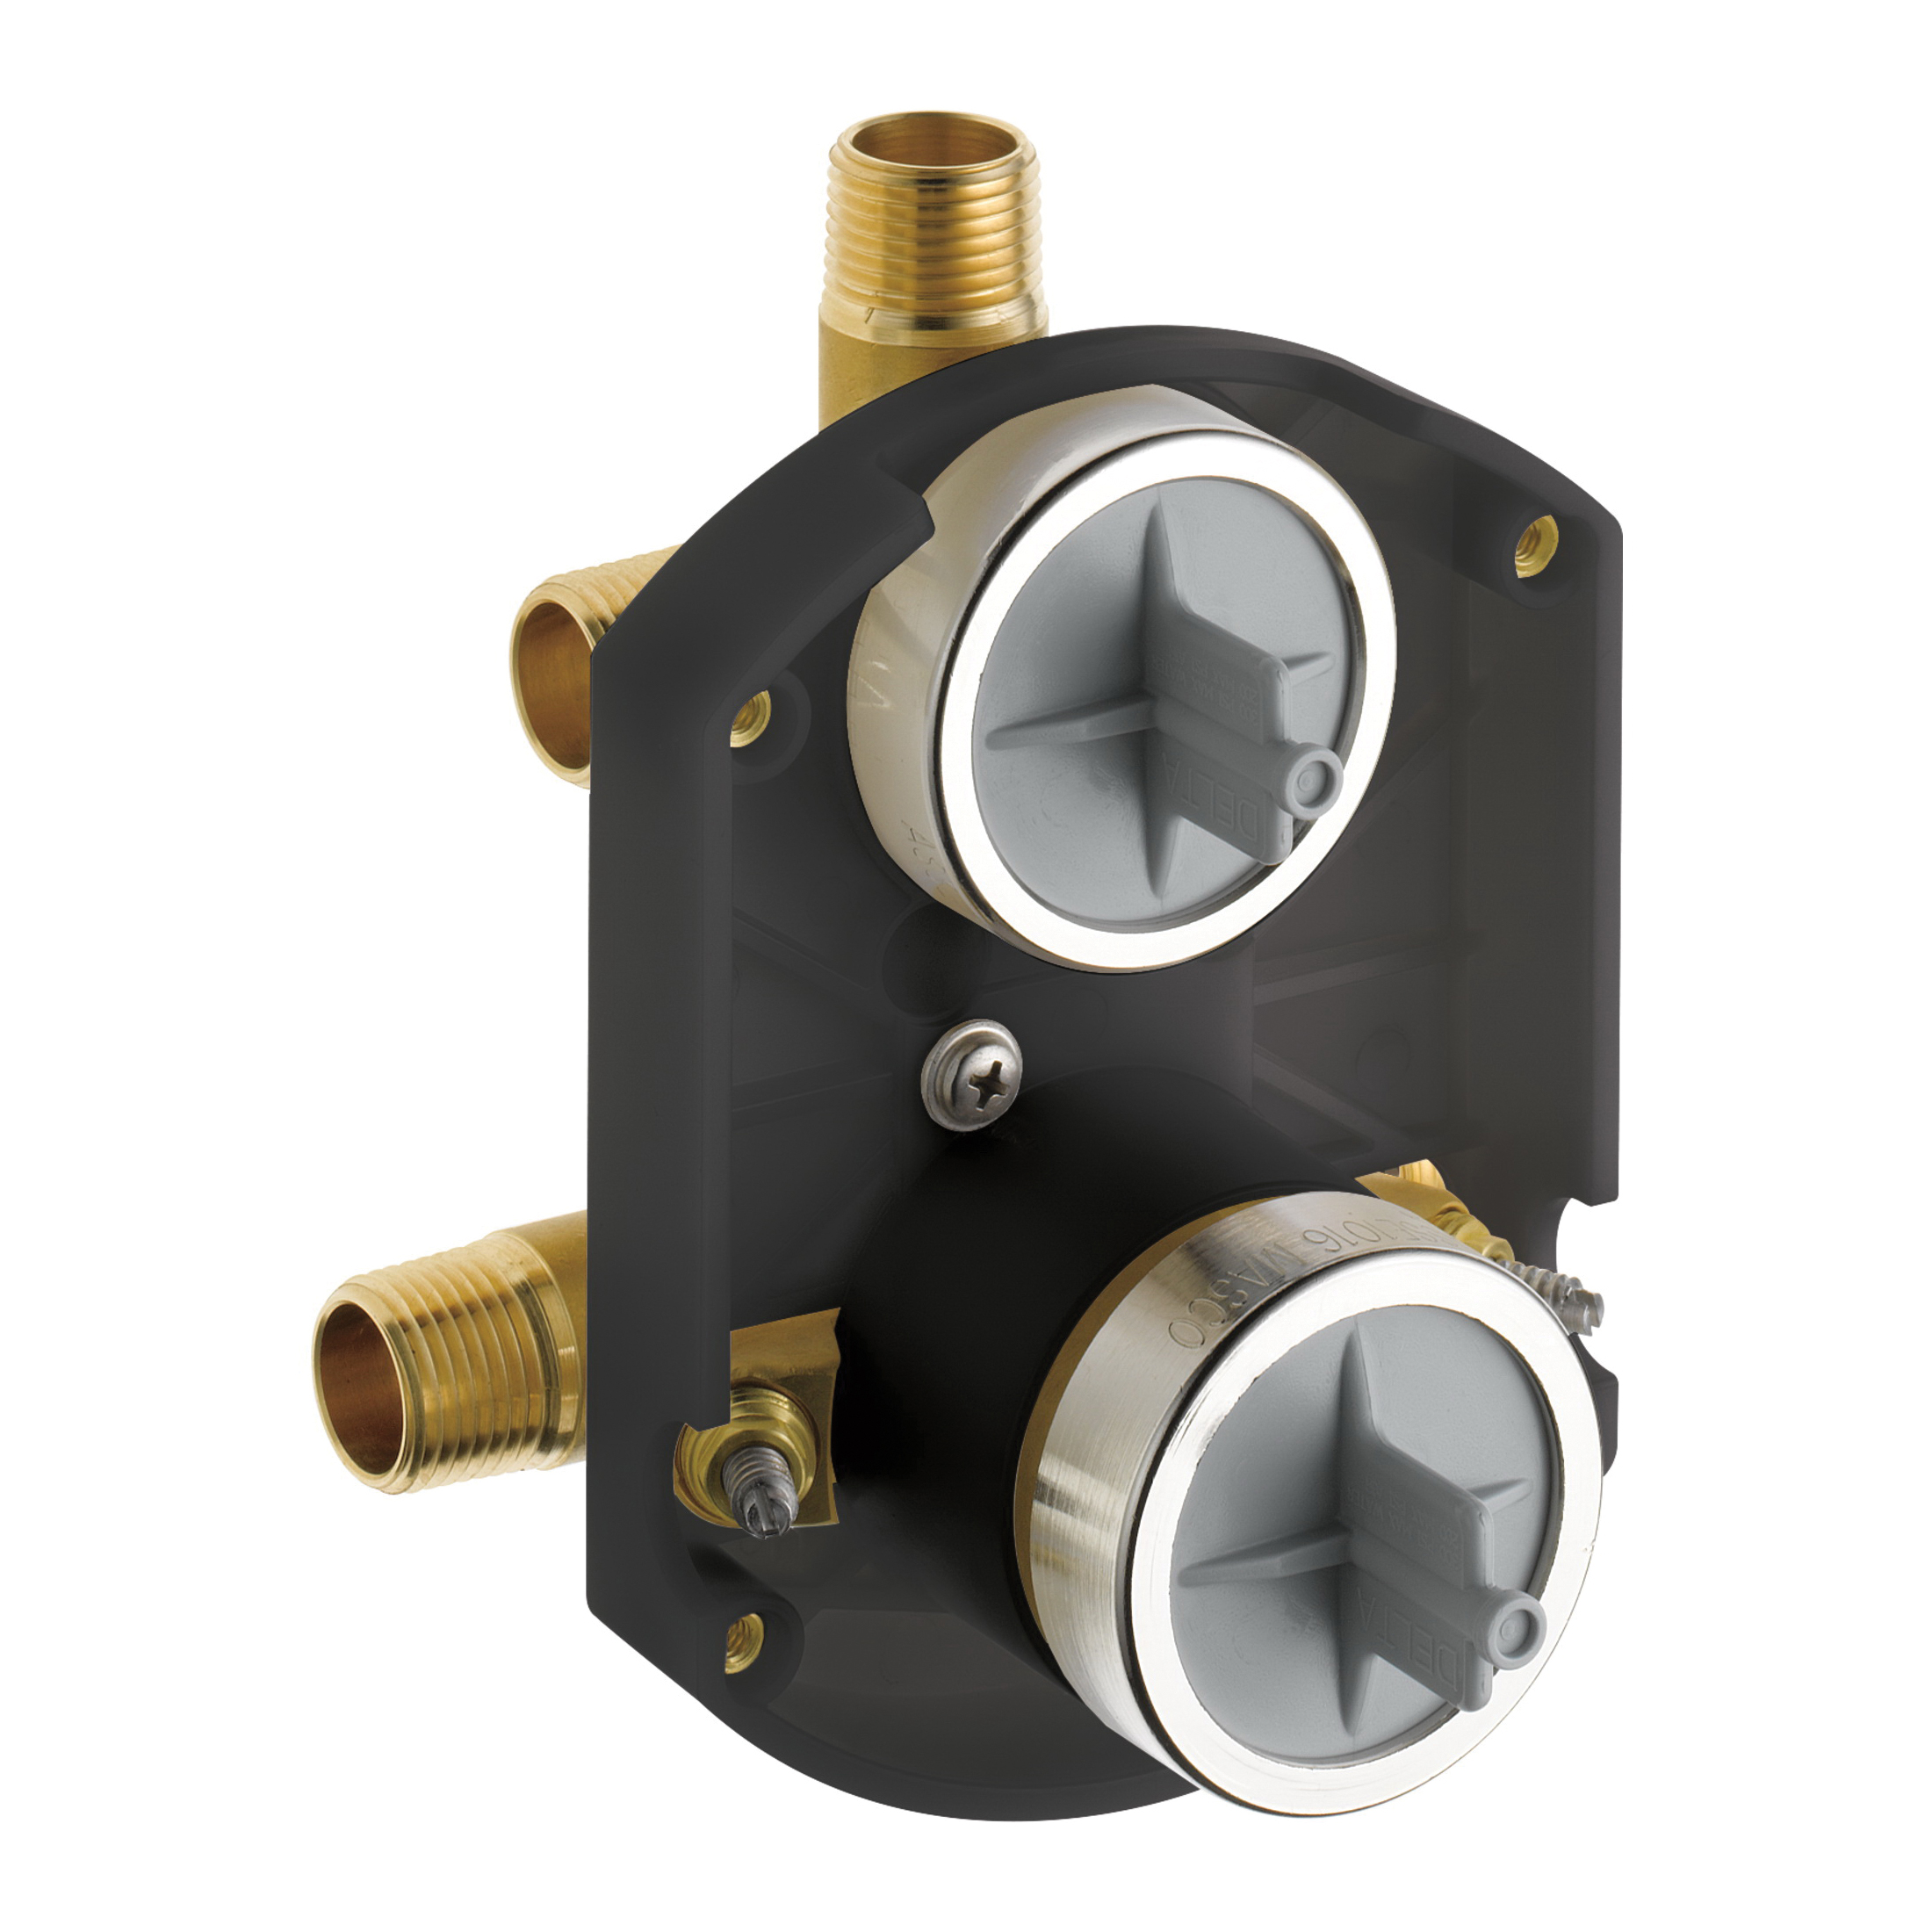 GTS   Delta Shower & Diverter Valve Multi Choice with Stops